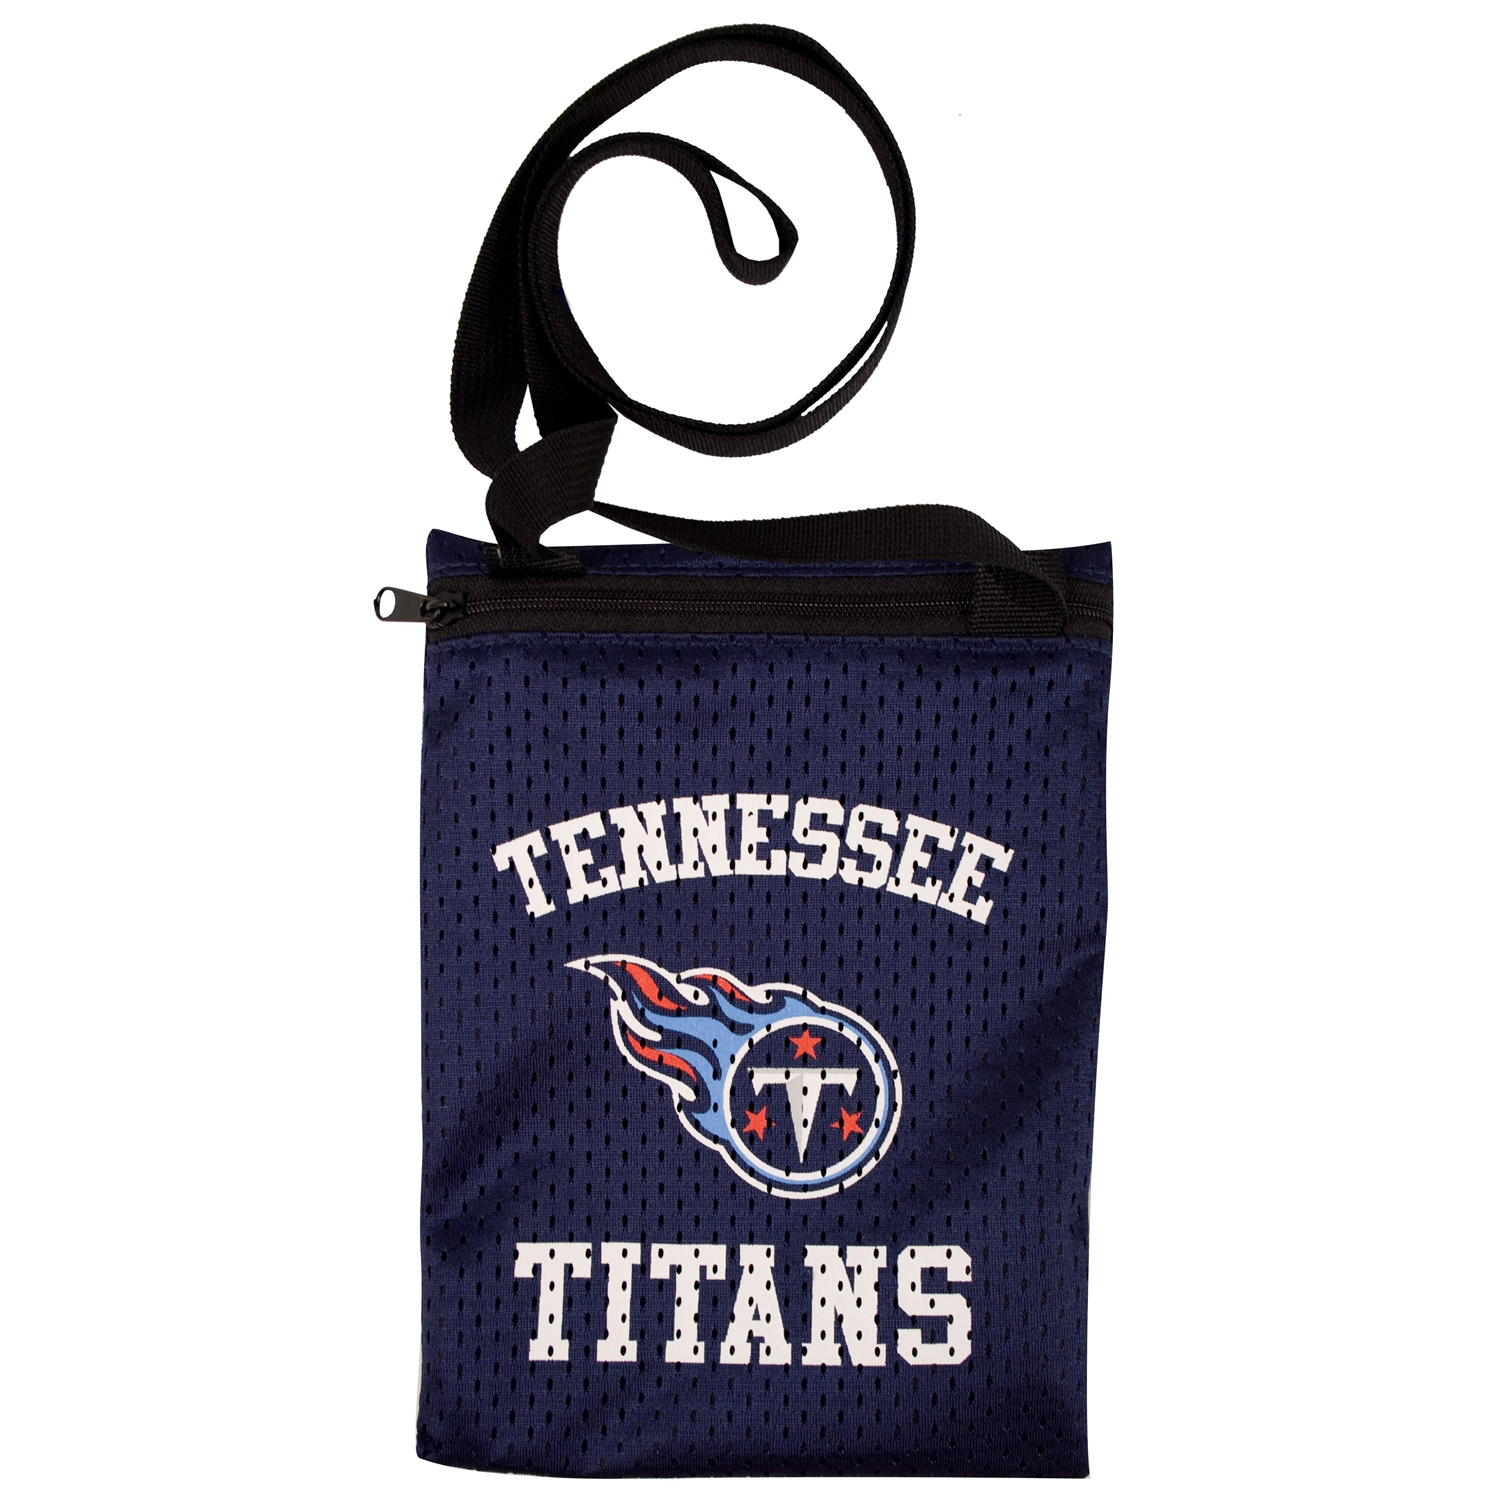 Tennessee Titans Game Day Pouch - 300103-titn - Handbags; Wallets Cases Nfl 300103-TITN